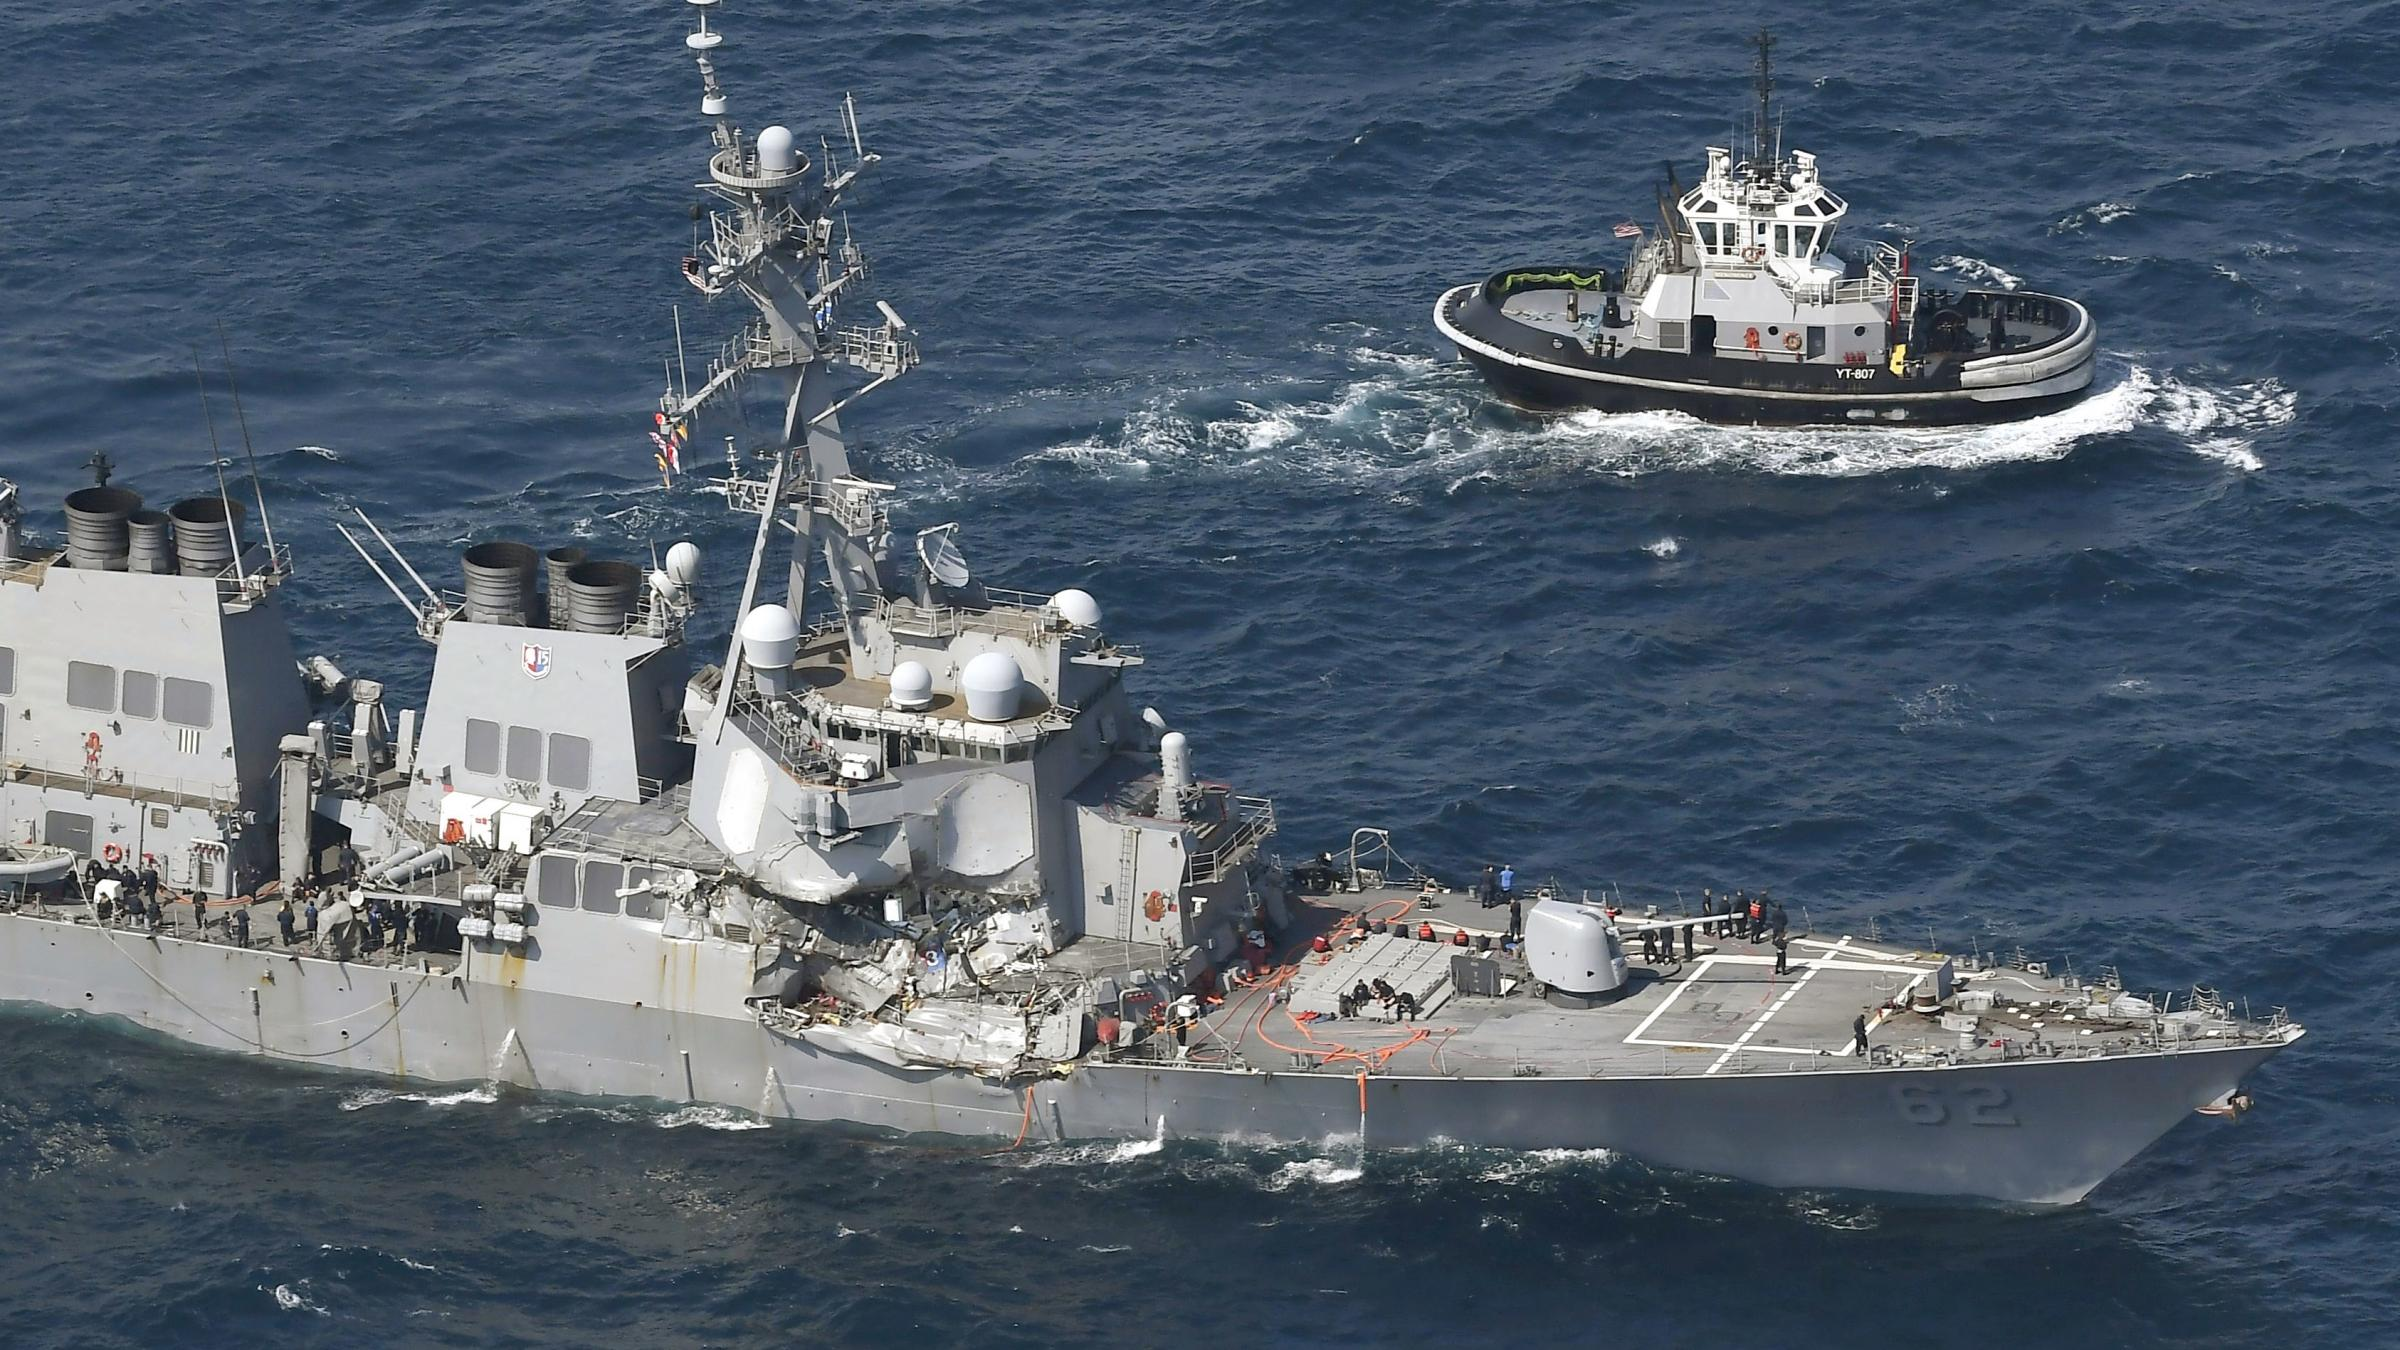 Seven missing, two injured after US Navy destroyer collides with merchant vessel